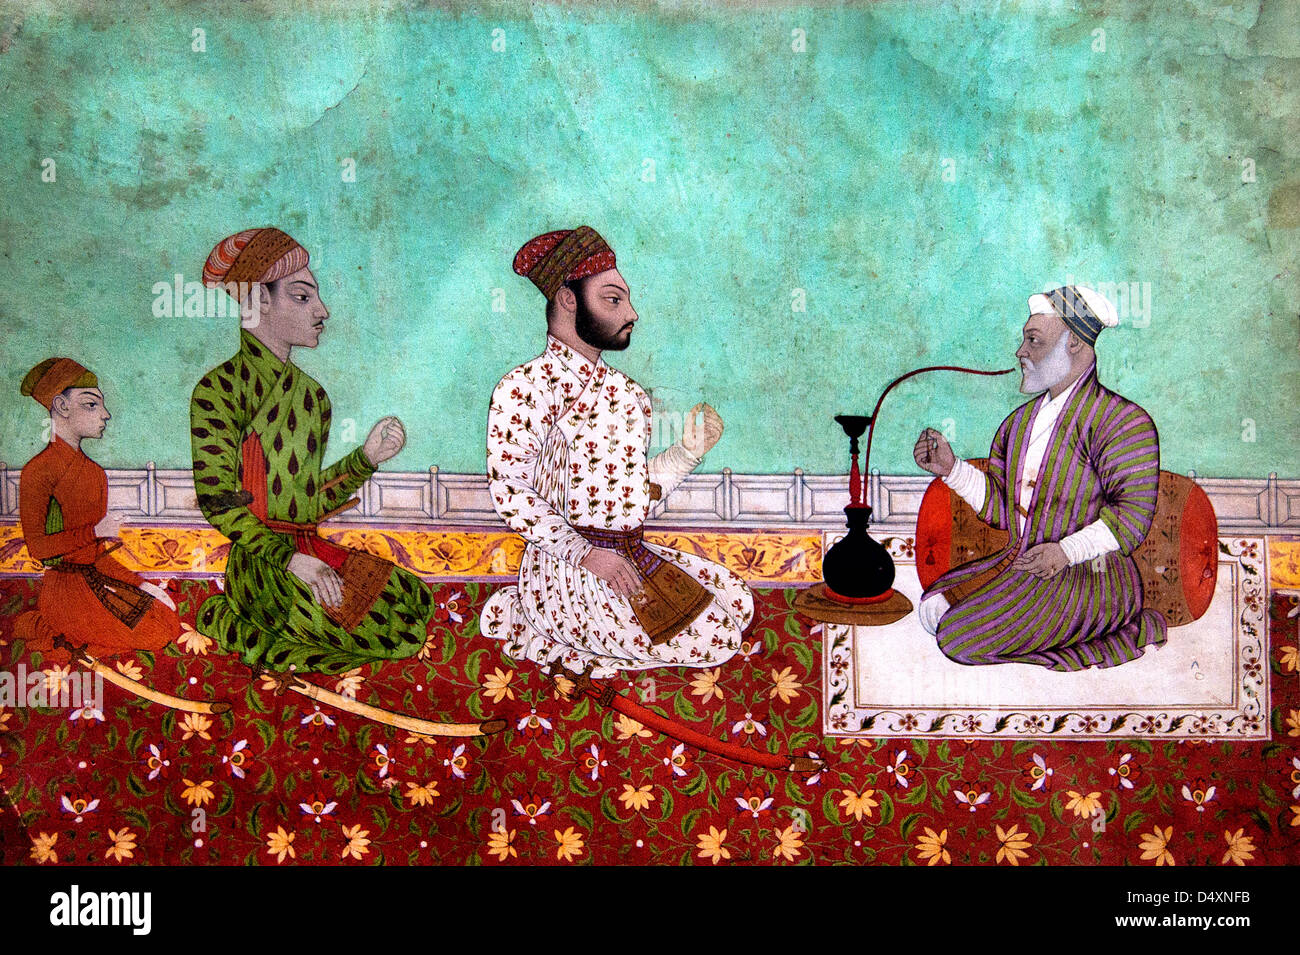 Nobleman in Conversation 18th Century Indian Rajasthan India miniature Hindhu - Stock Image